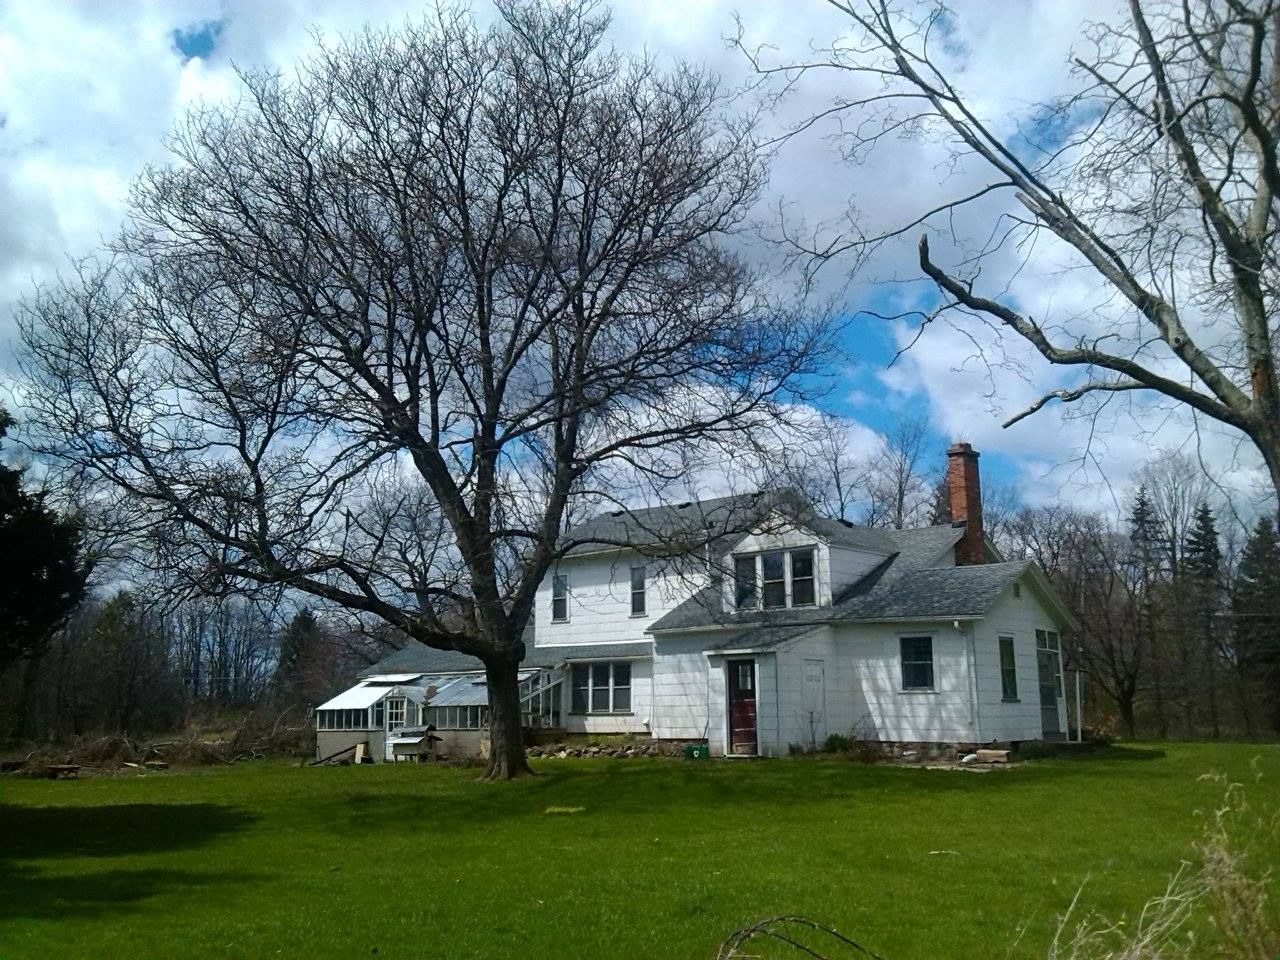 house from back with tree